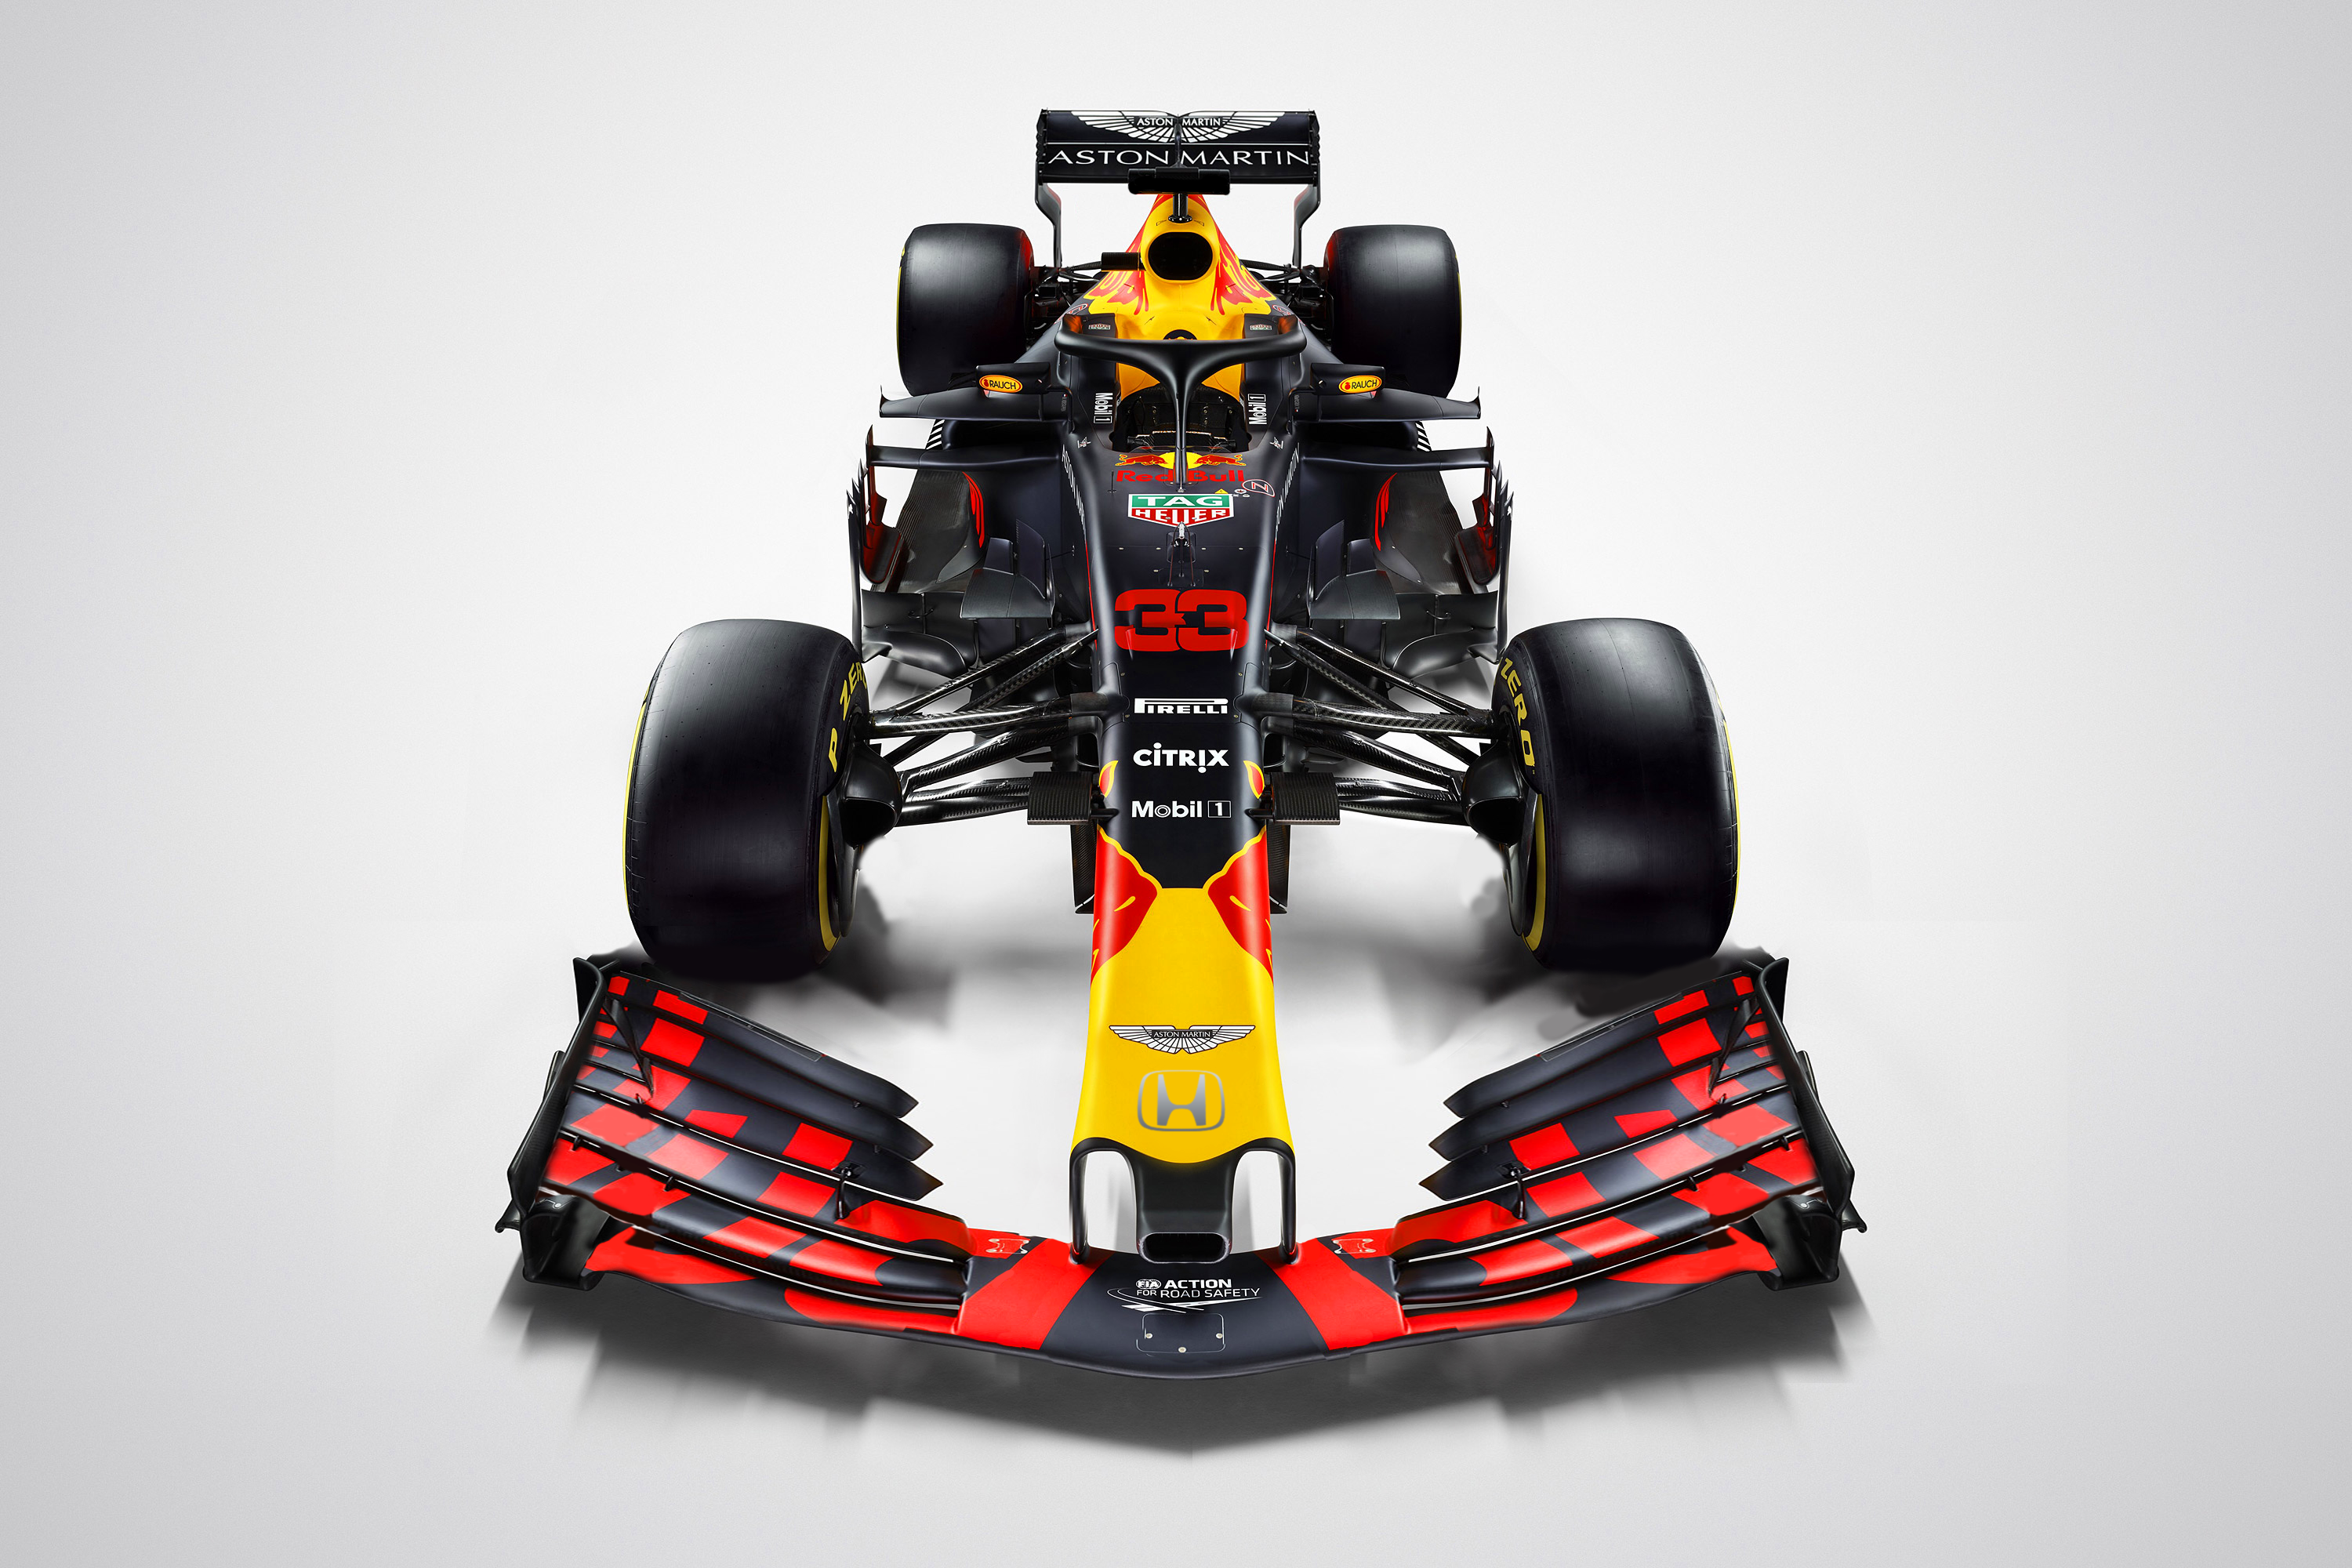 38 All New 2019 Aston Martin Red Bull Style for 2019 Aston Martin Red Bull